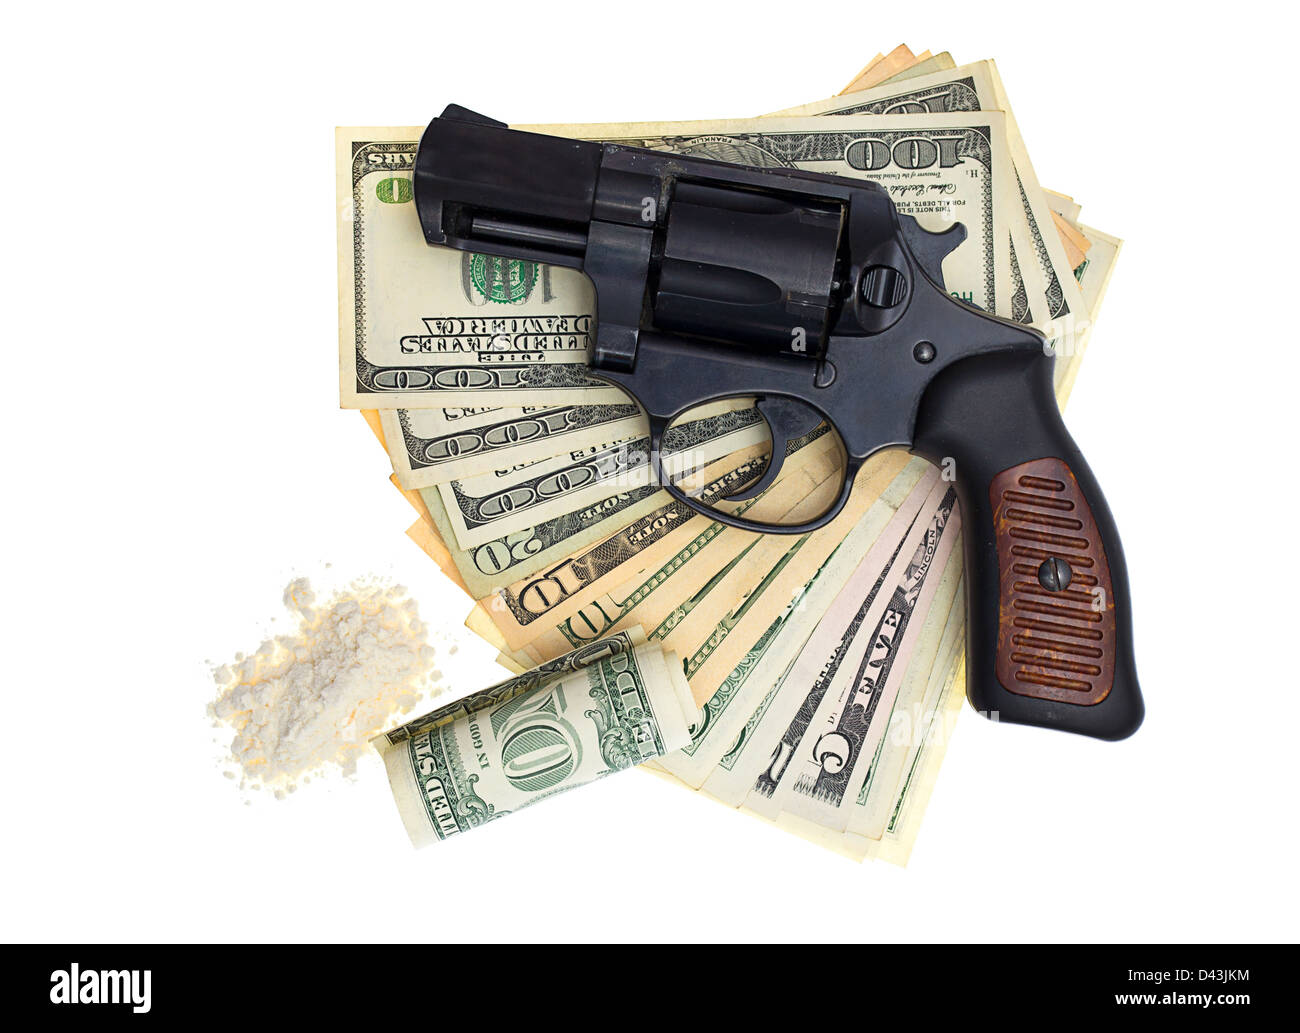 handcuffs, gun and money isolated on a white background Stock Photo